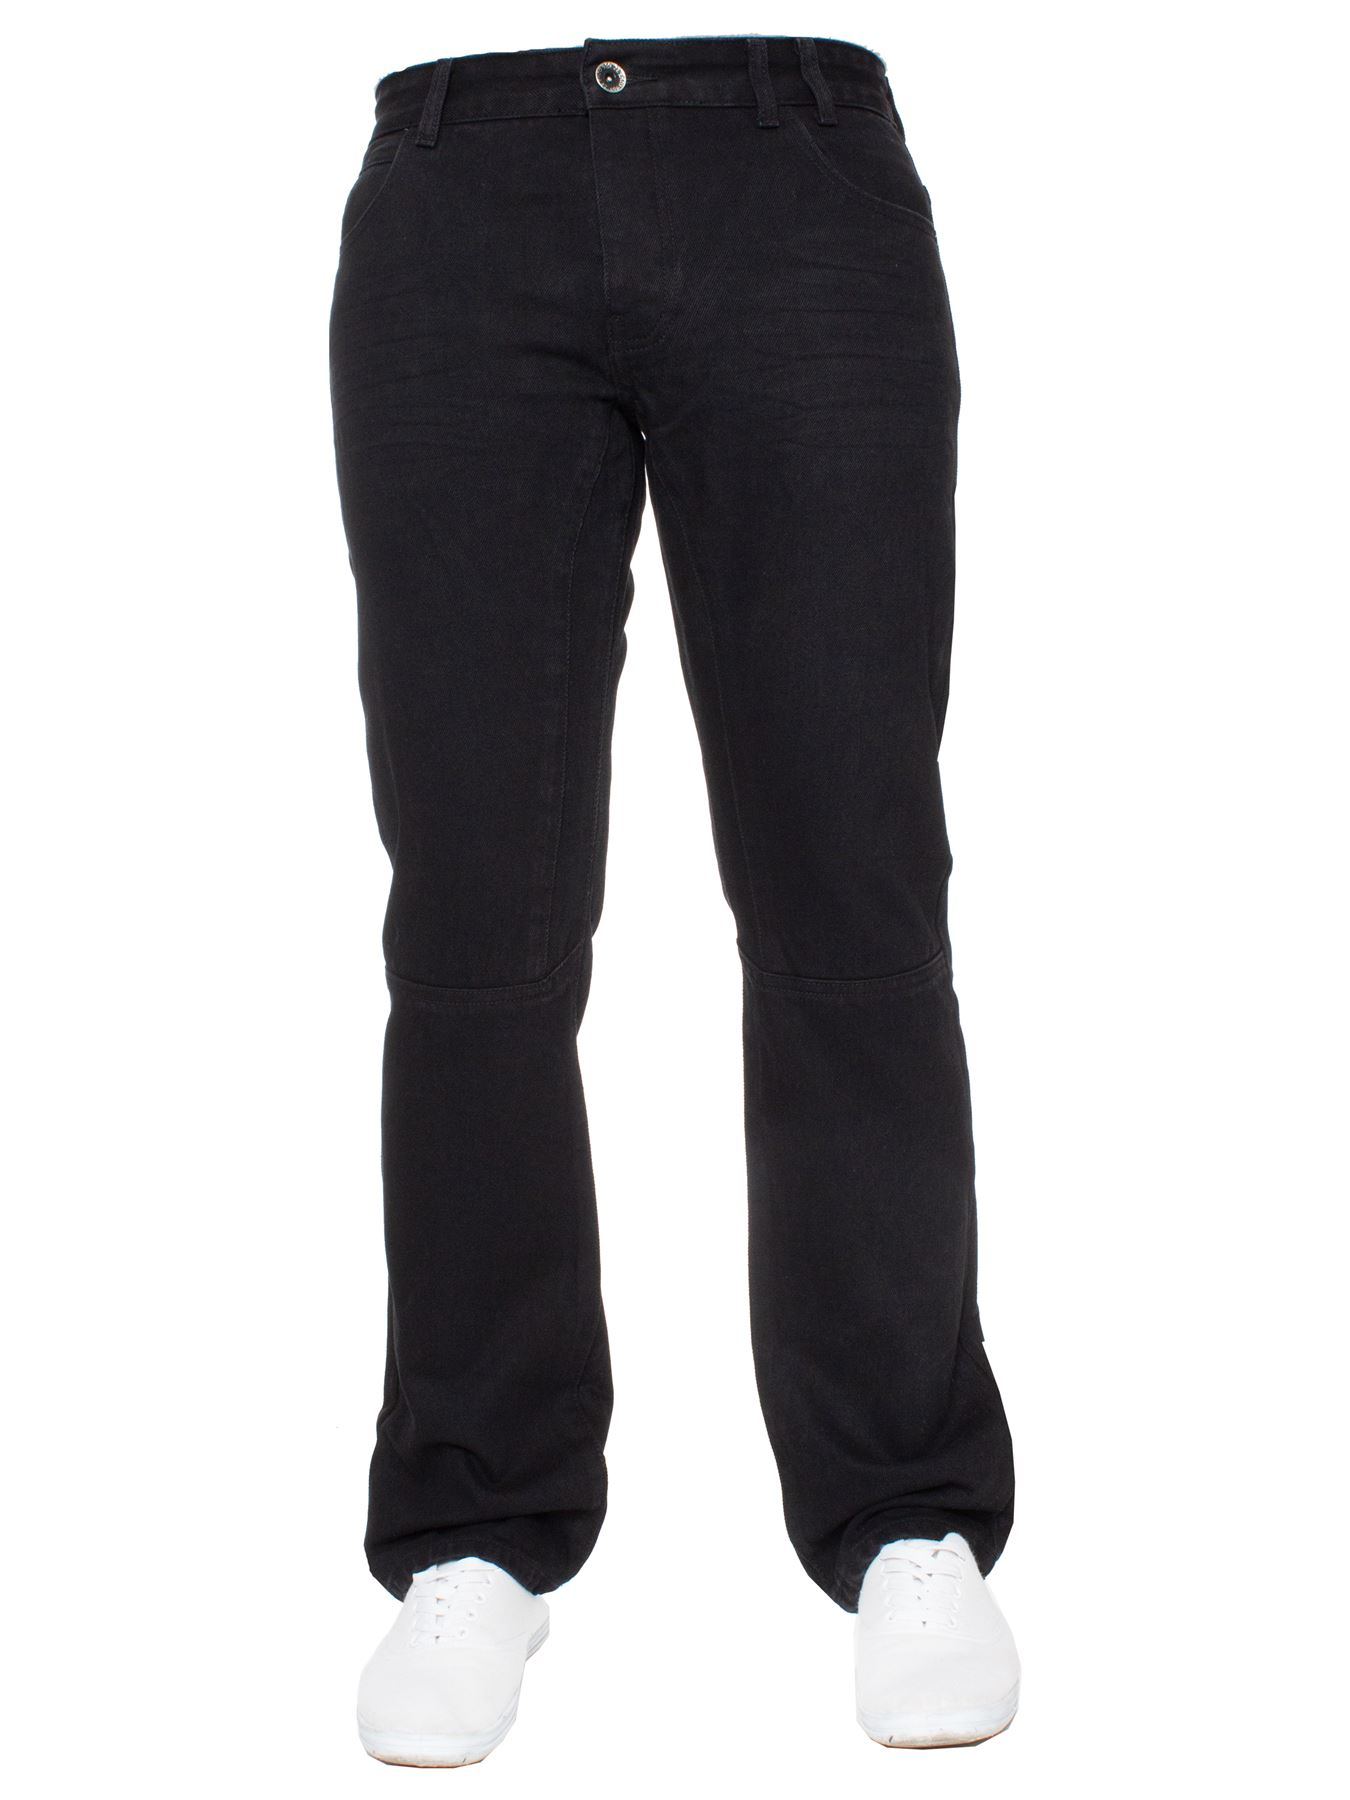 Enzo-Mens-Straight-Jeans-Regular-Leg-Designer-Work-Denim-Pants-All-Waists-Sizes thumbnail 13